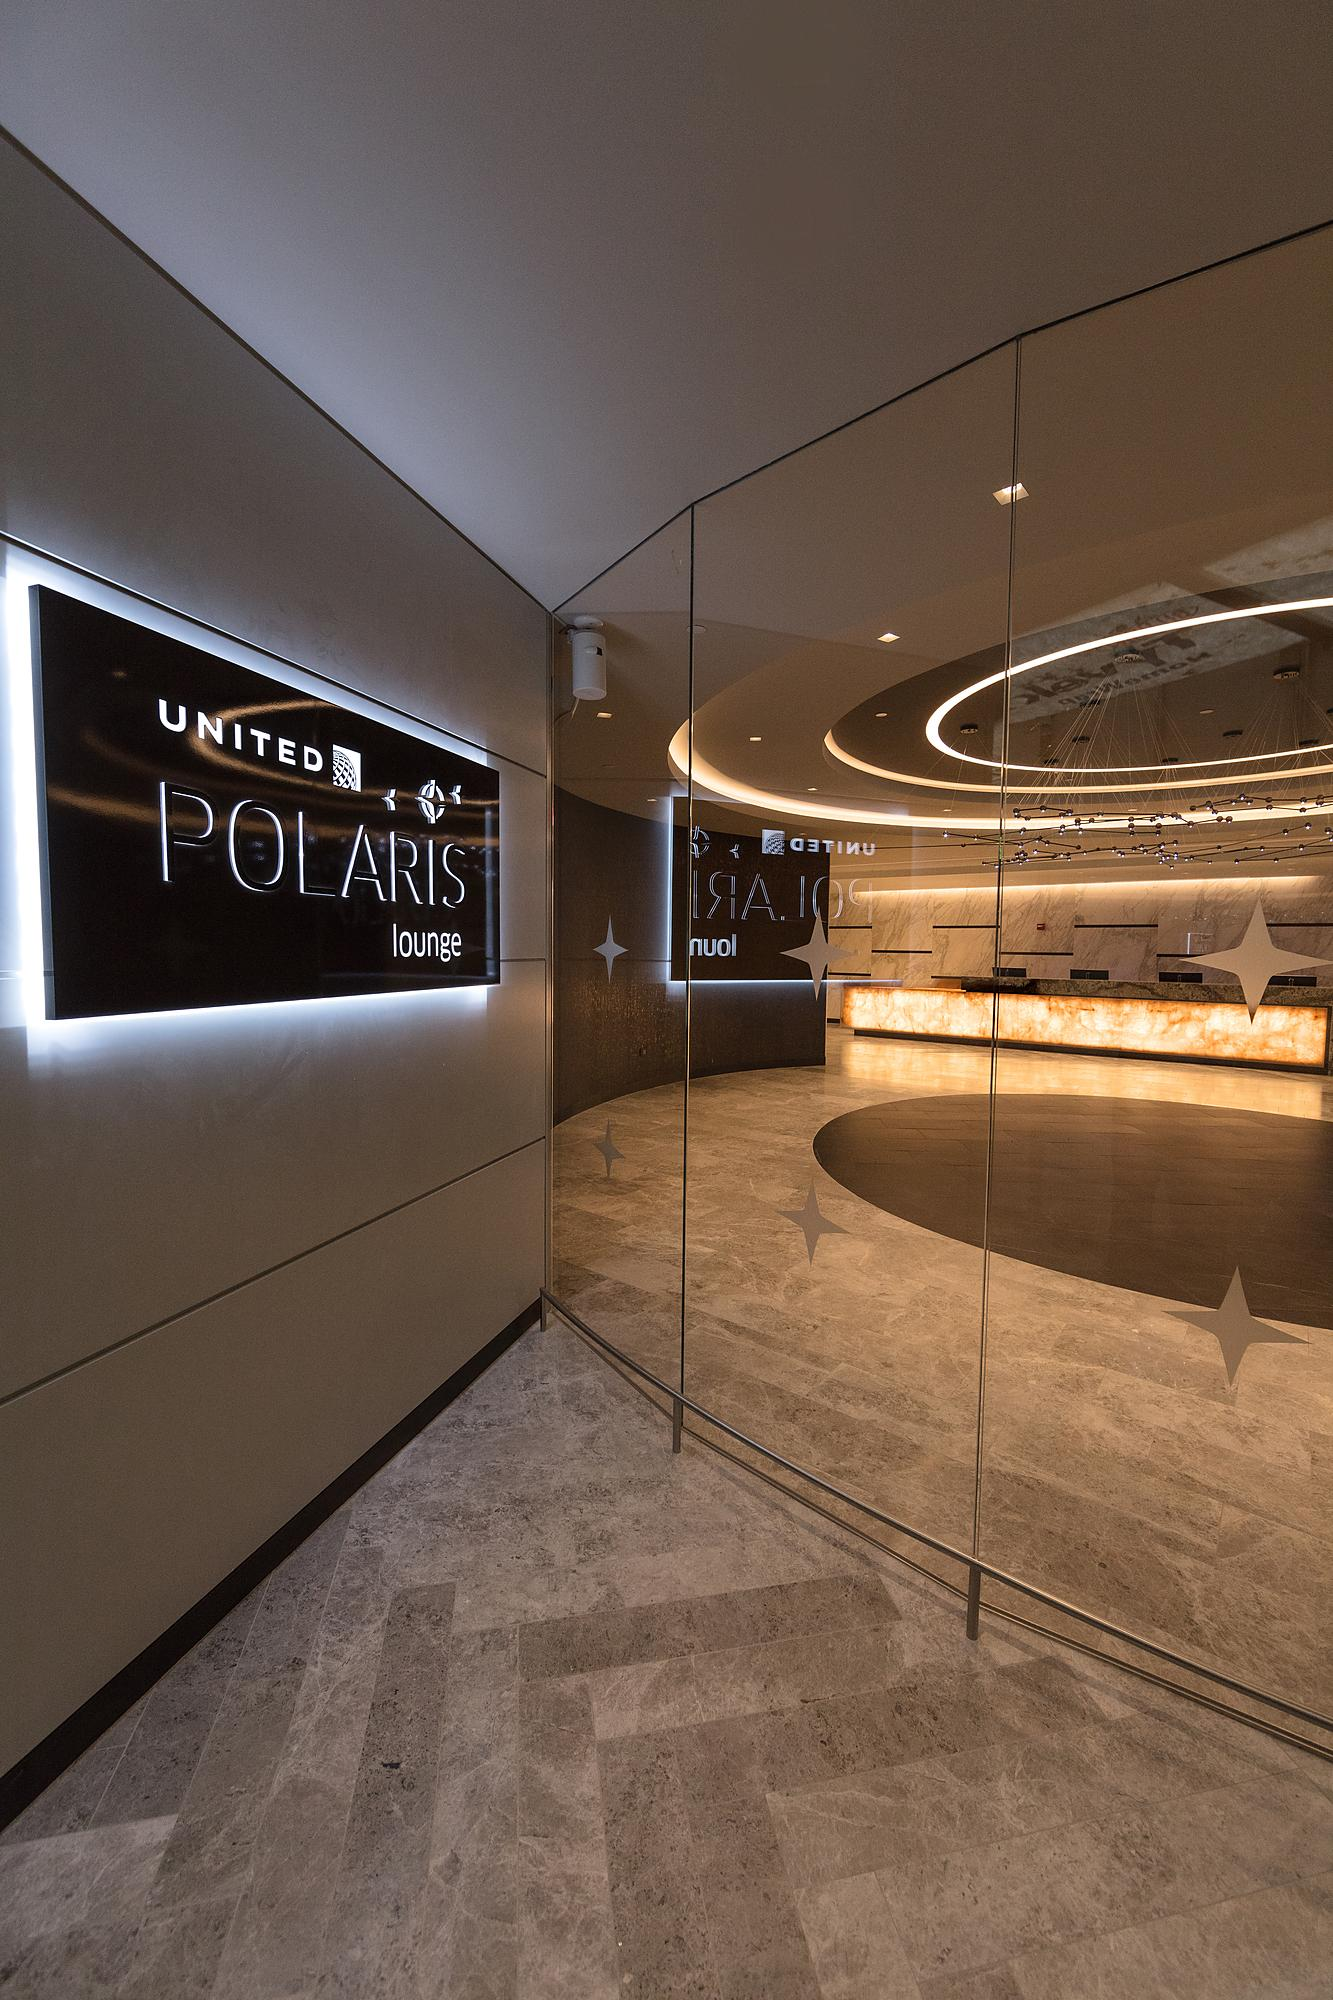 United Polaris lounges are currently located in Chicago, San Francisco, Houston, New York/Newark and Los Angeles